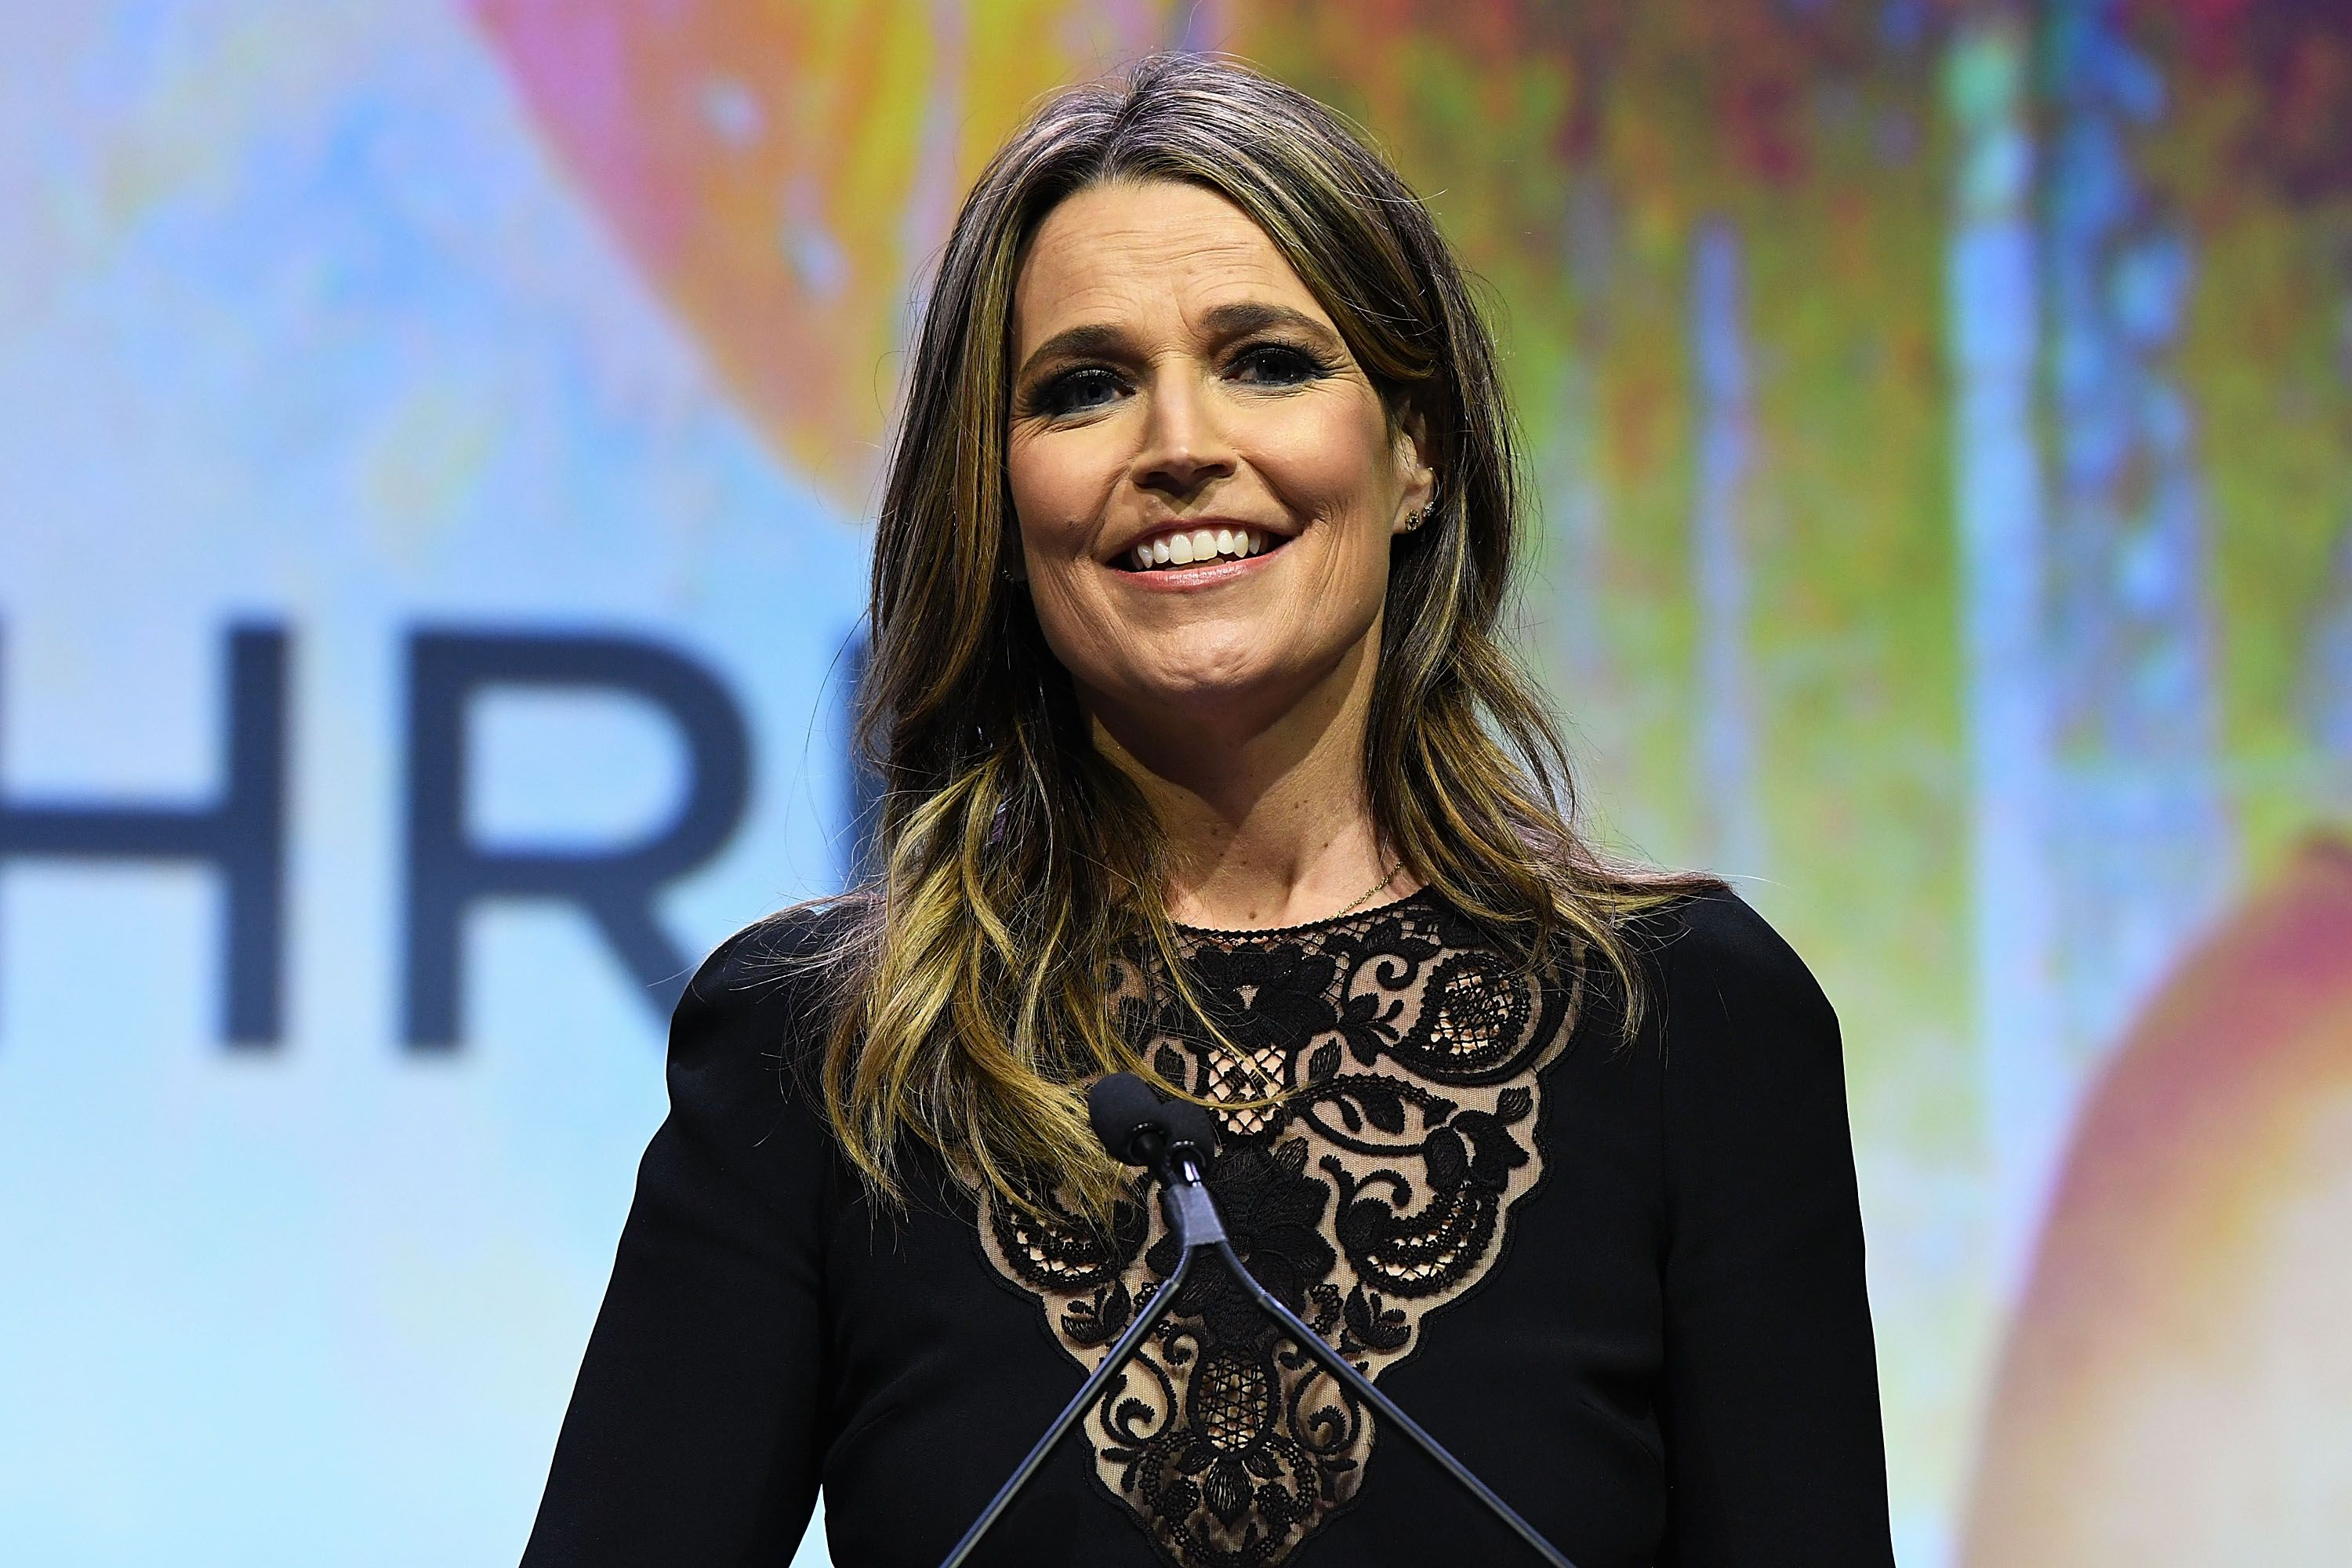 Savannah Guthrie at 2017 Matrix Awards at Sheraton New York Times Square on April 24, 2017 | Photo: Getty Images